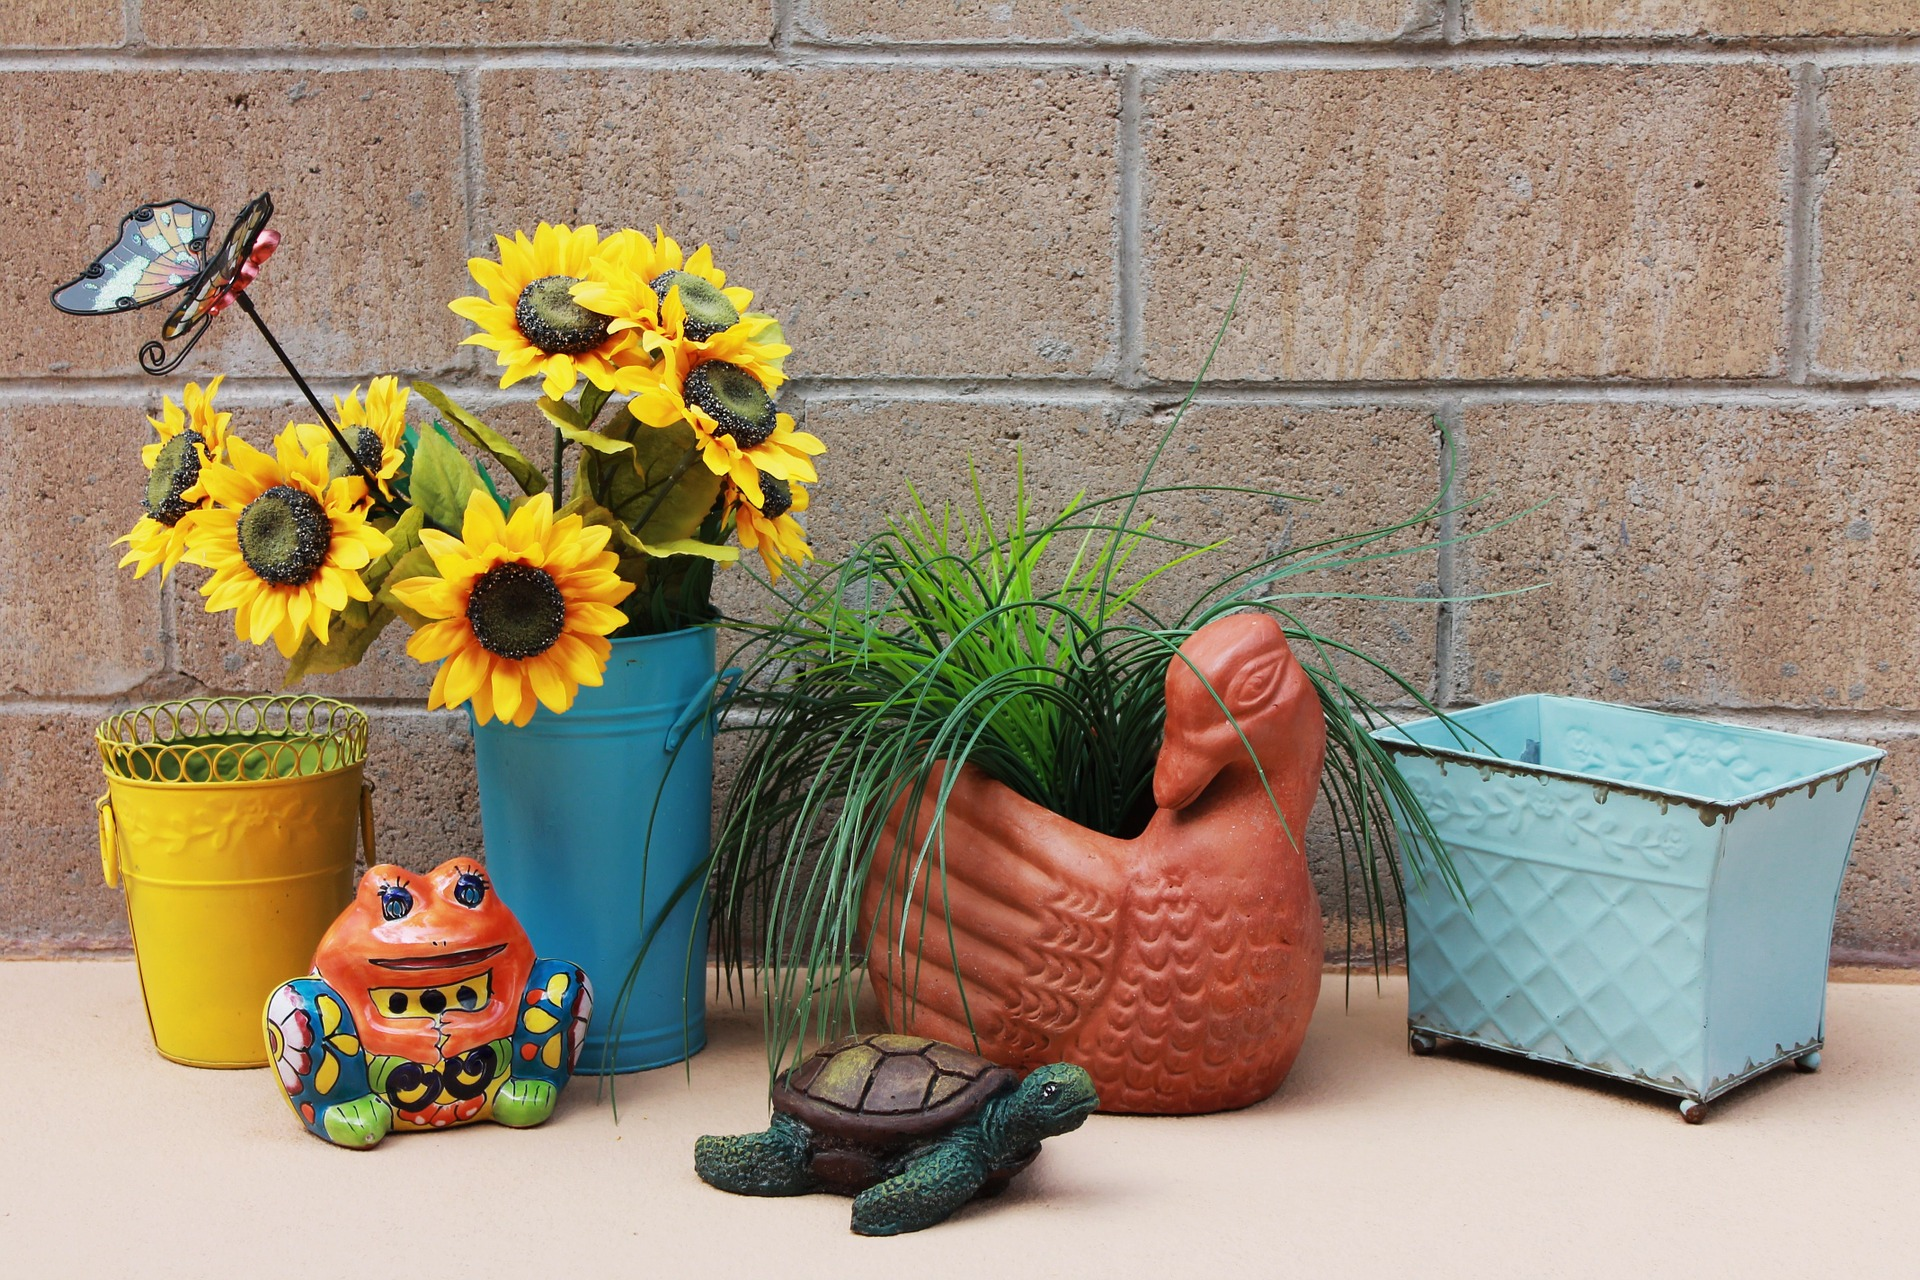 image of cheerful accessories like butterfly, ceramic frog and turtle and brightly colored flower pots